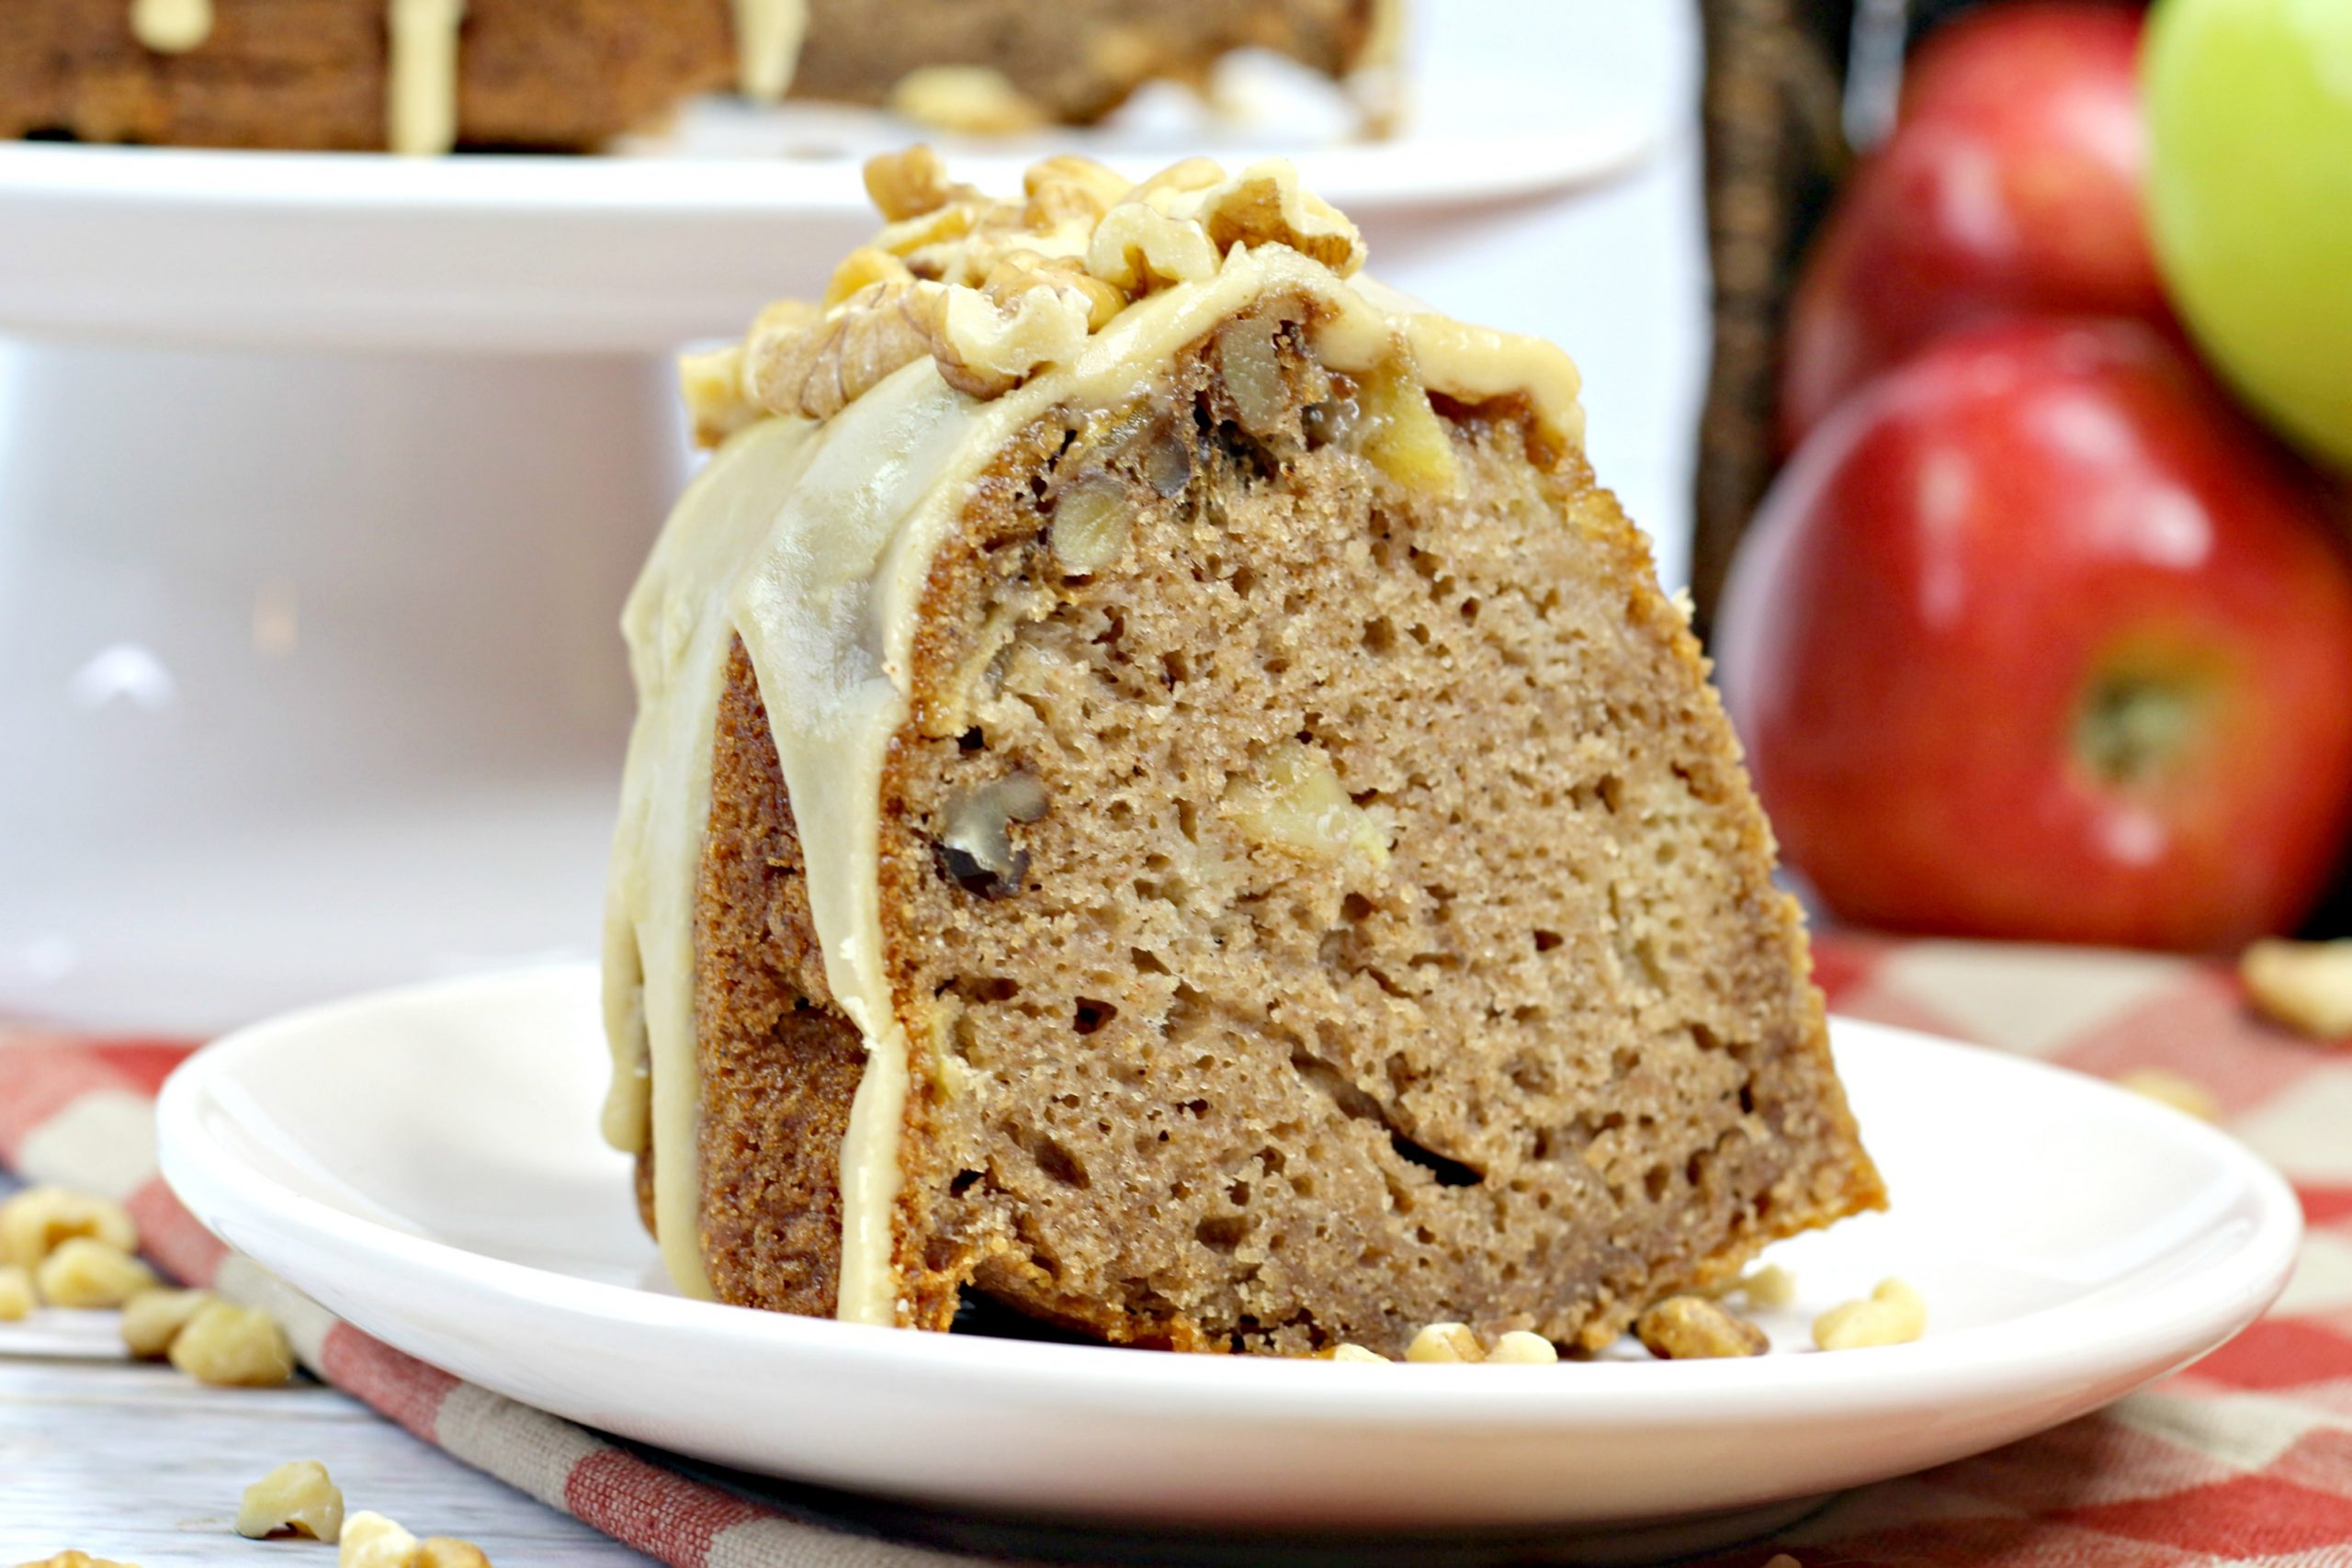 A slice of the caramel apple Bundt cake topped with a glaze and walnuts.